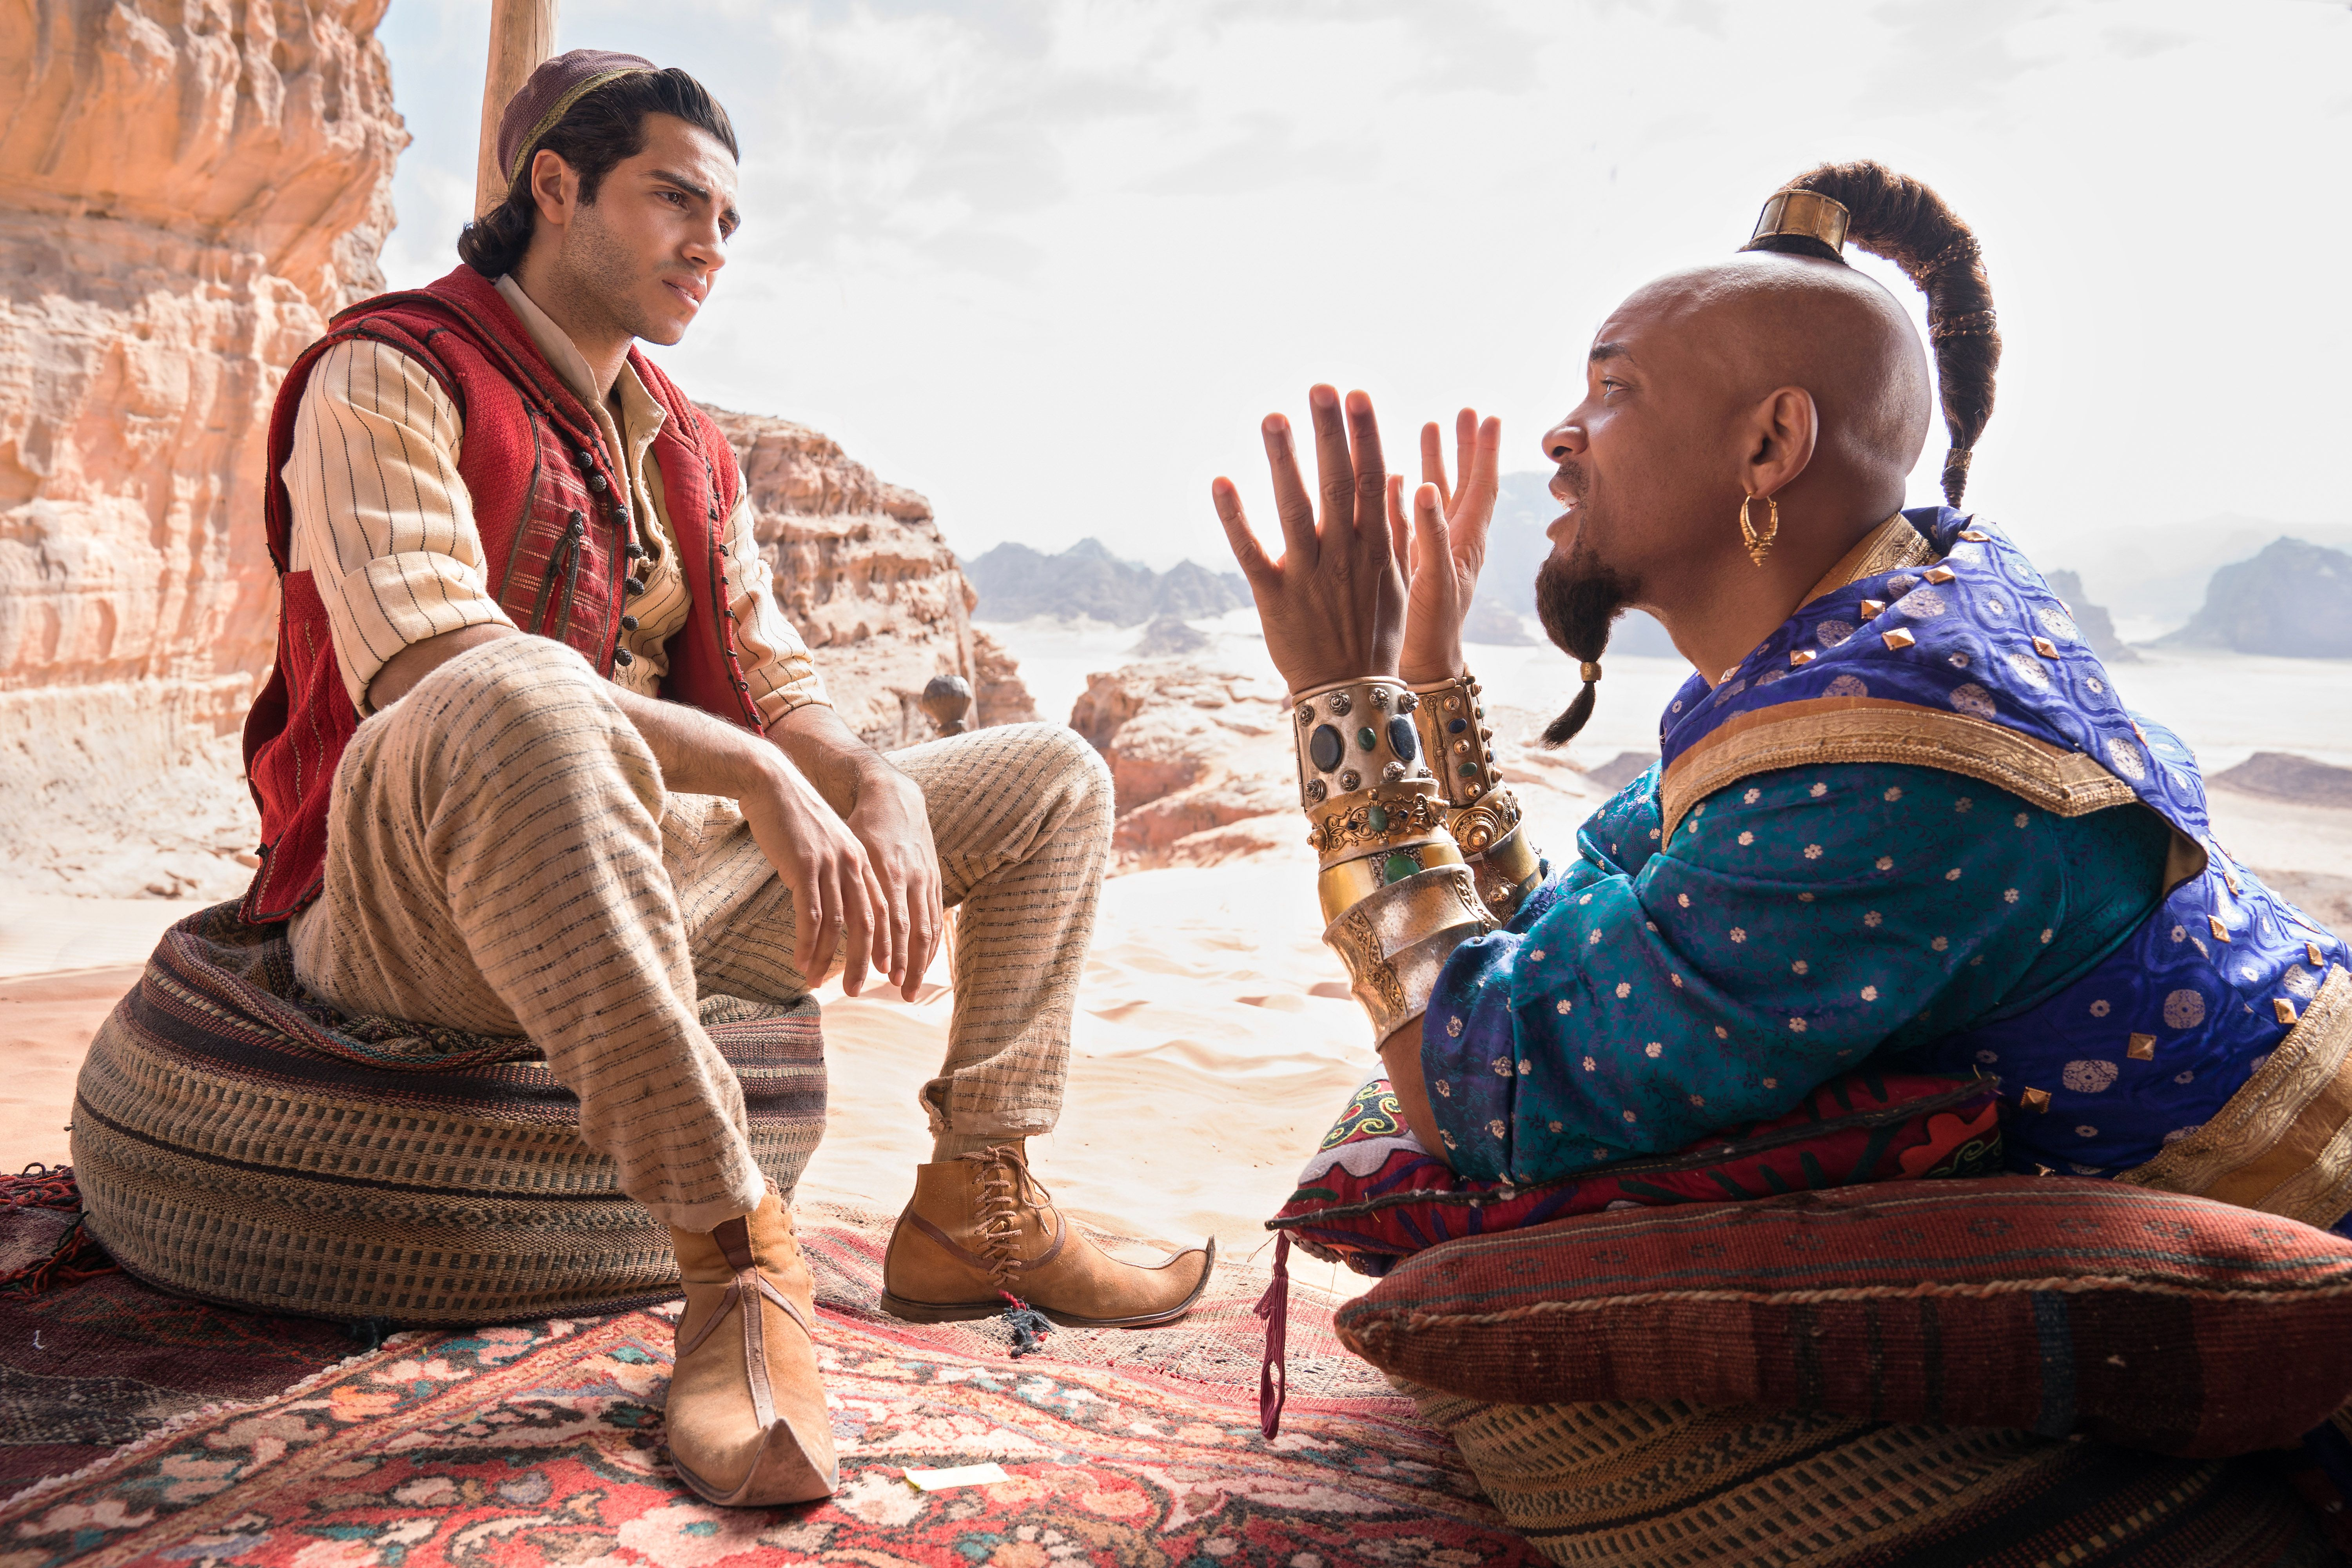 Mena Massoud Says He Hasn't Gotten An Audition Since Starring in 'Aladdin'